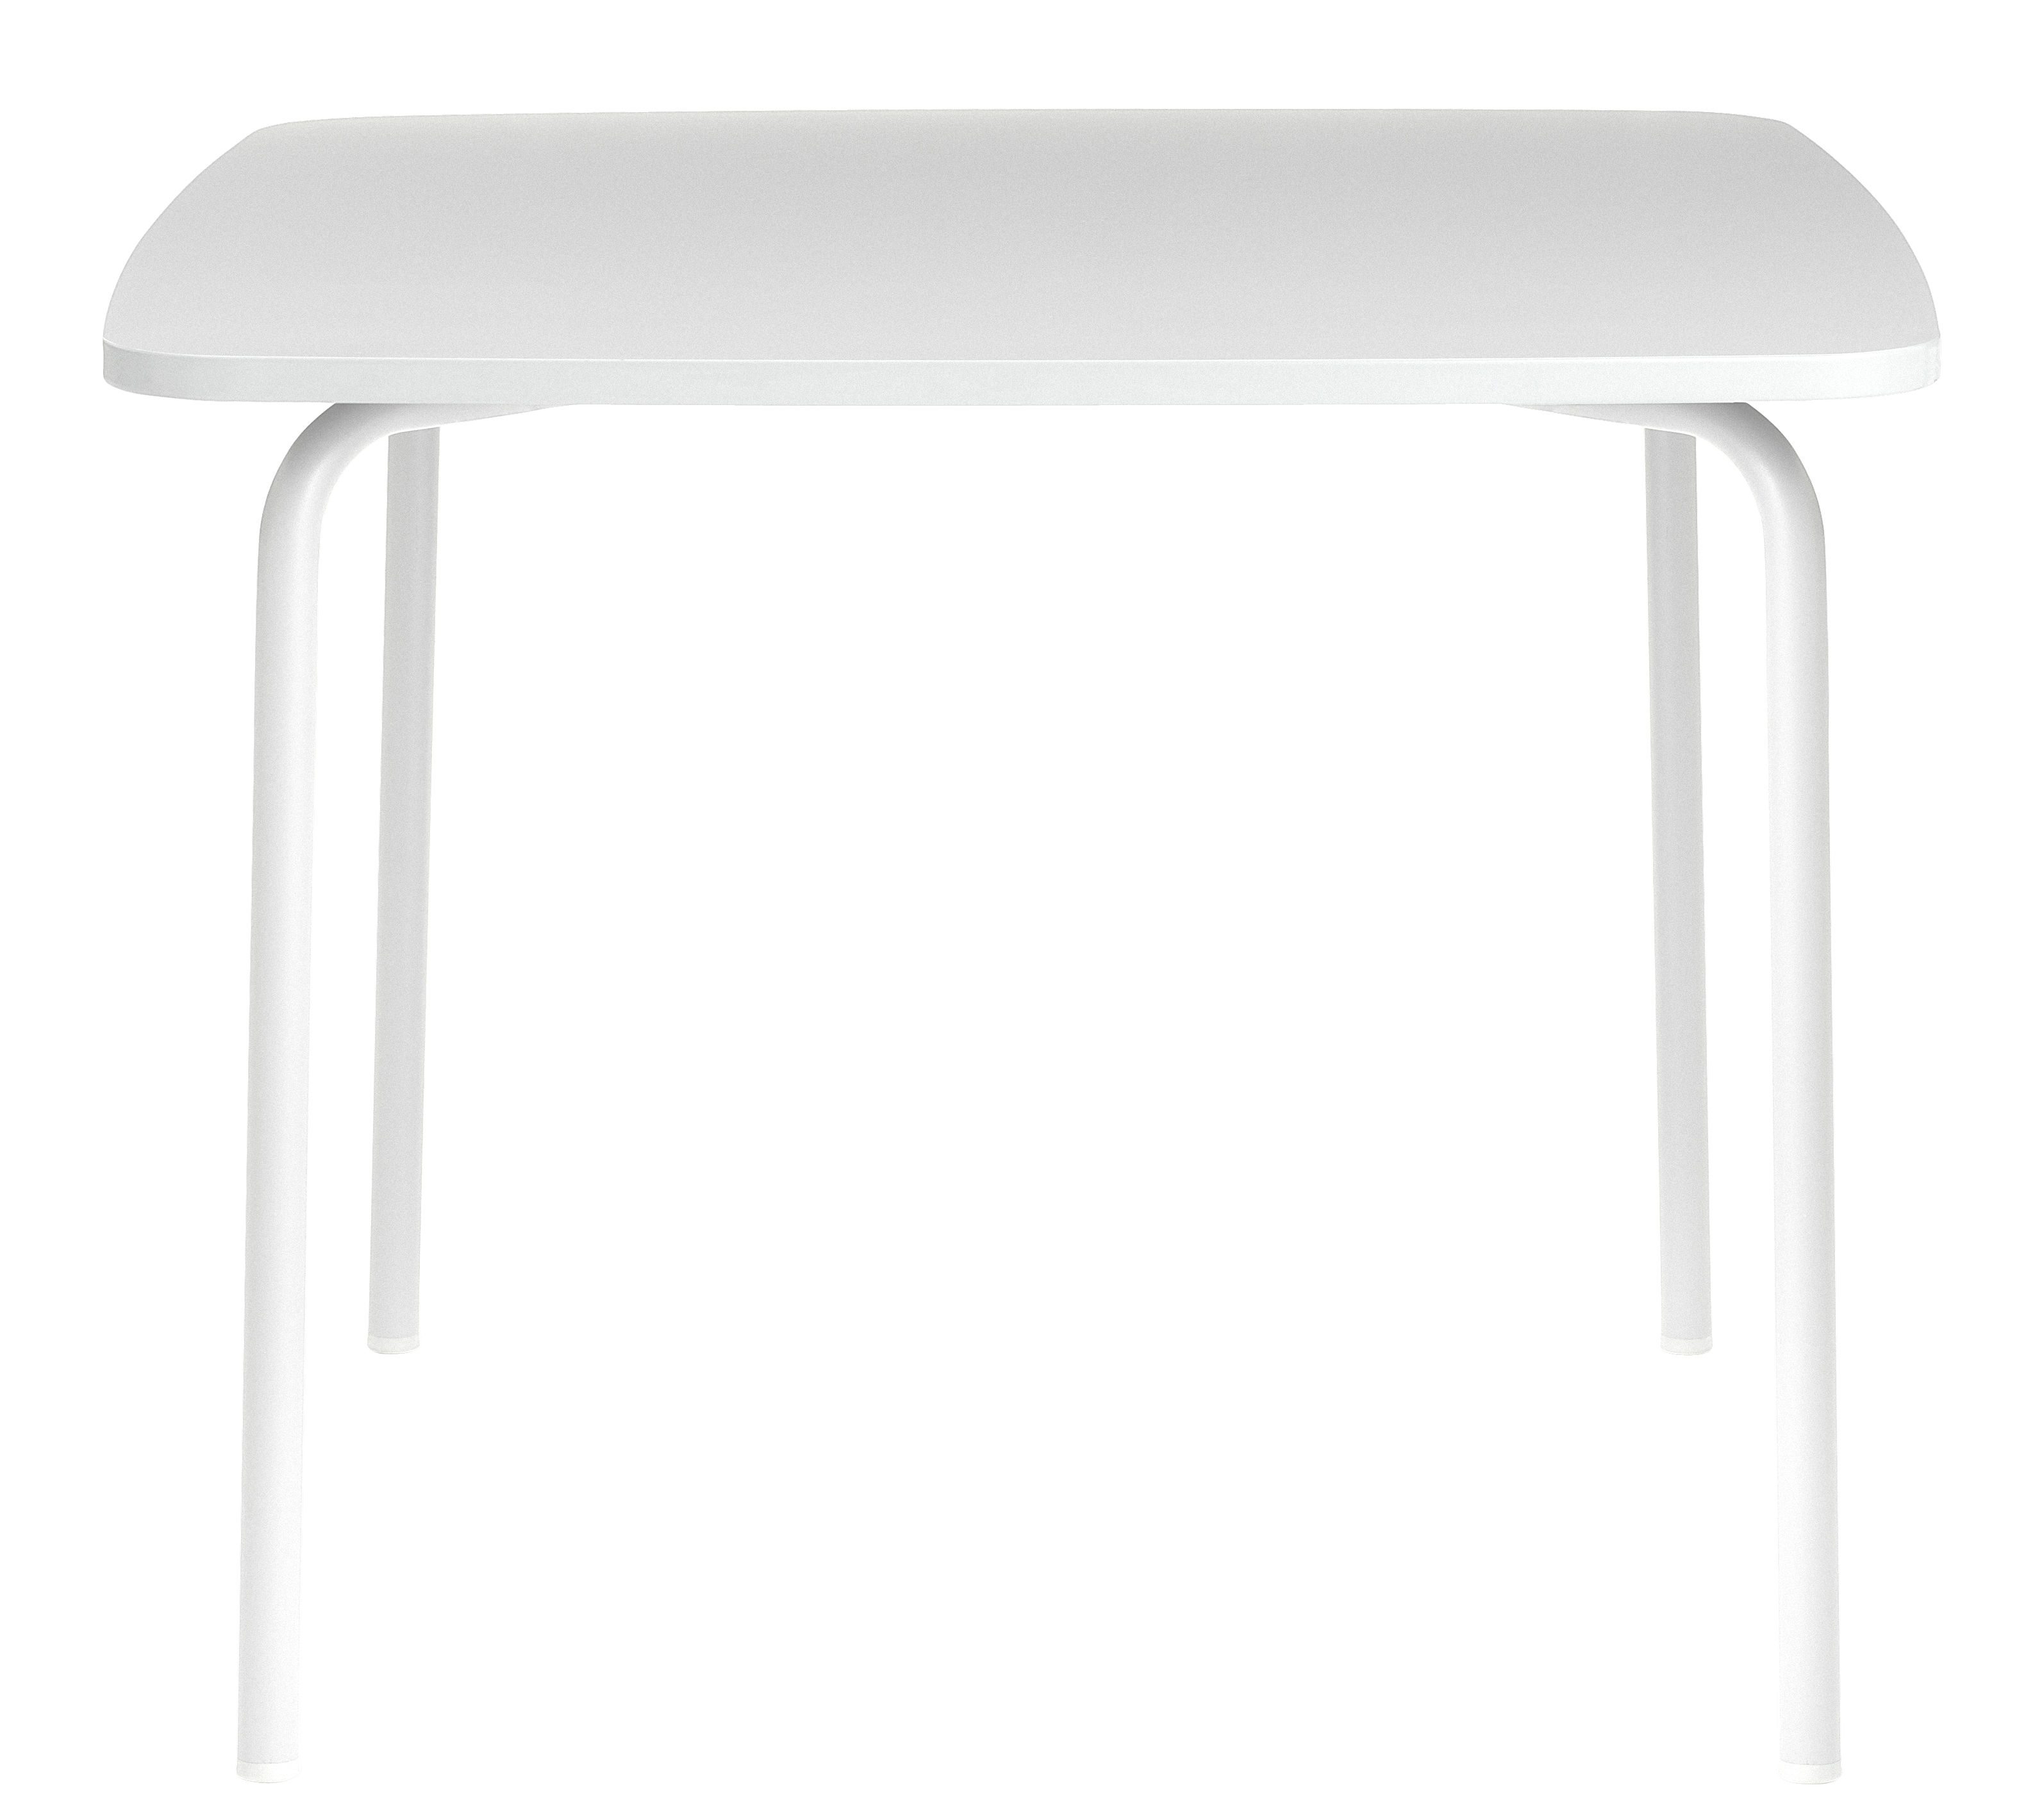 Furniture - Dining Tables - My Table Small Square table by Normann Copenhagen - White - Lacquered steel, Laminate